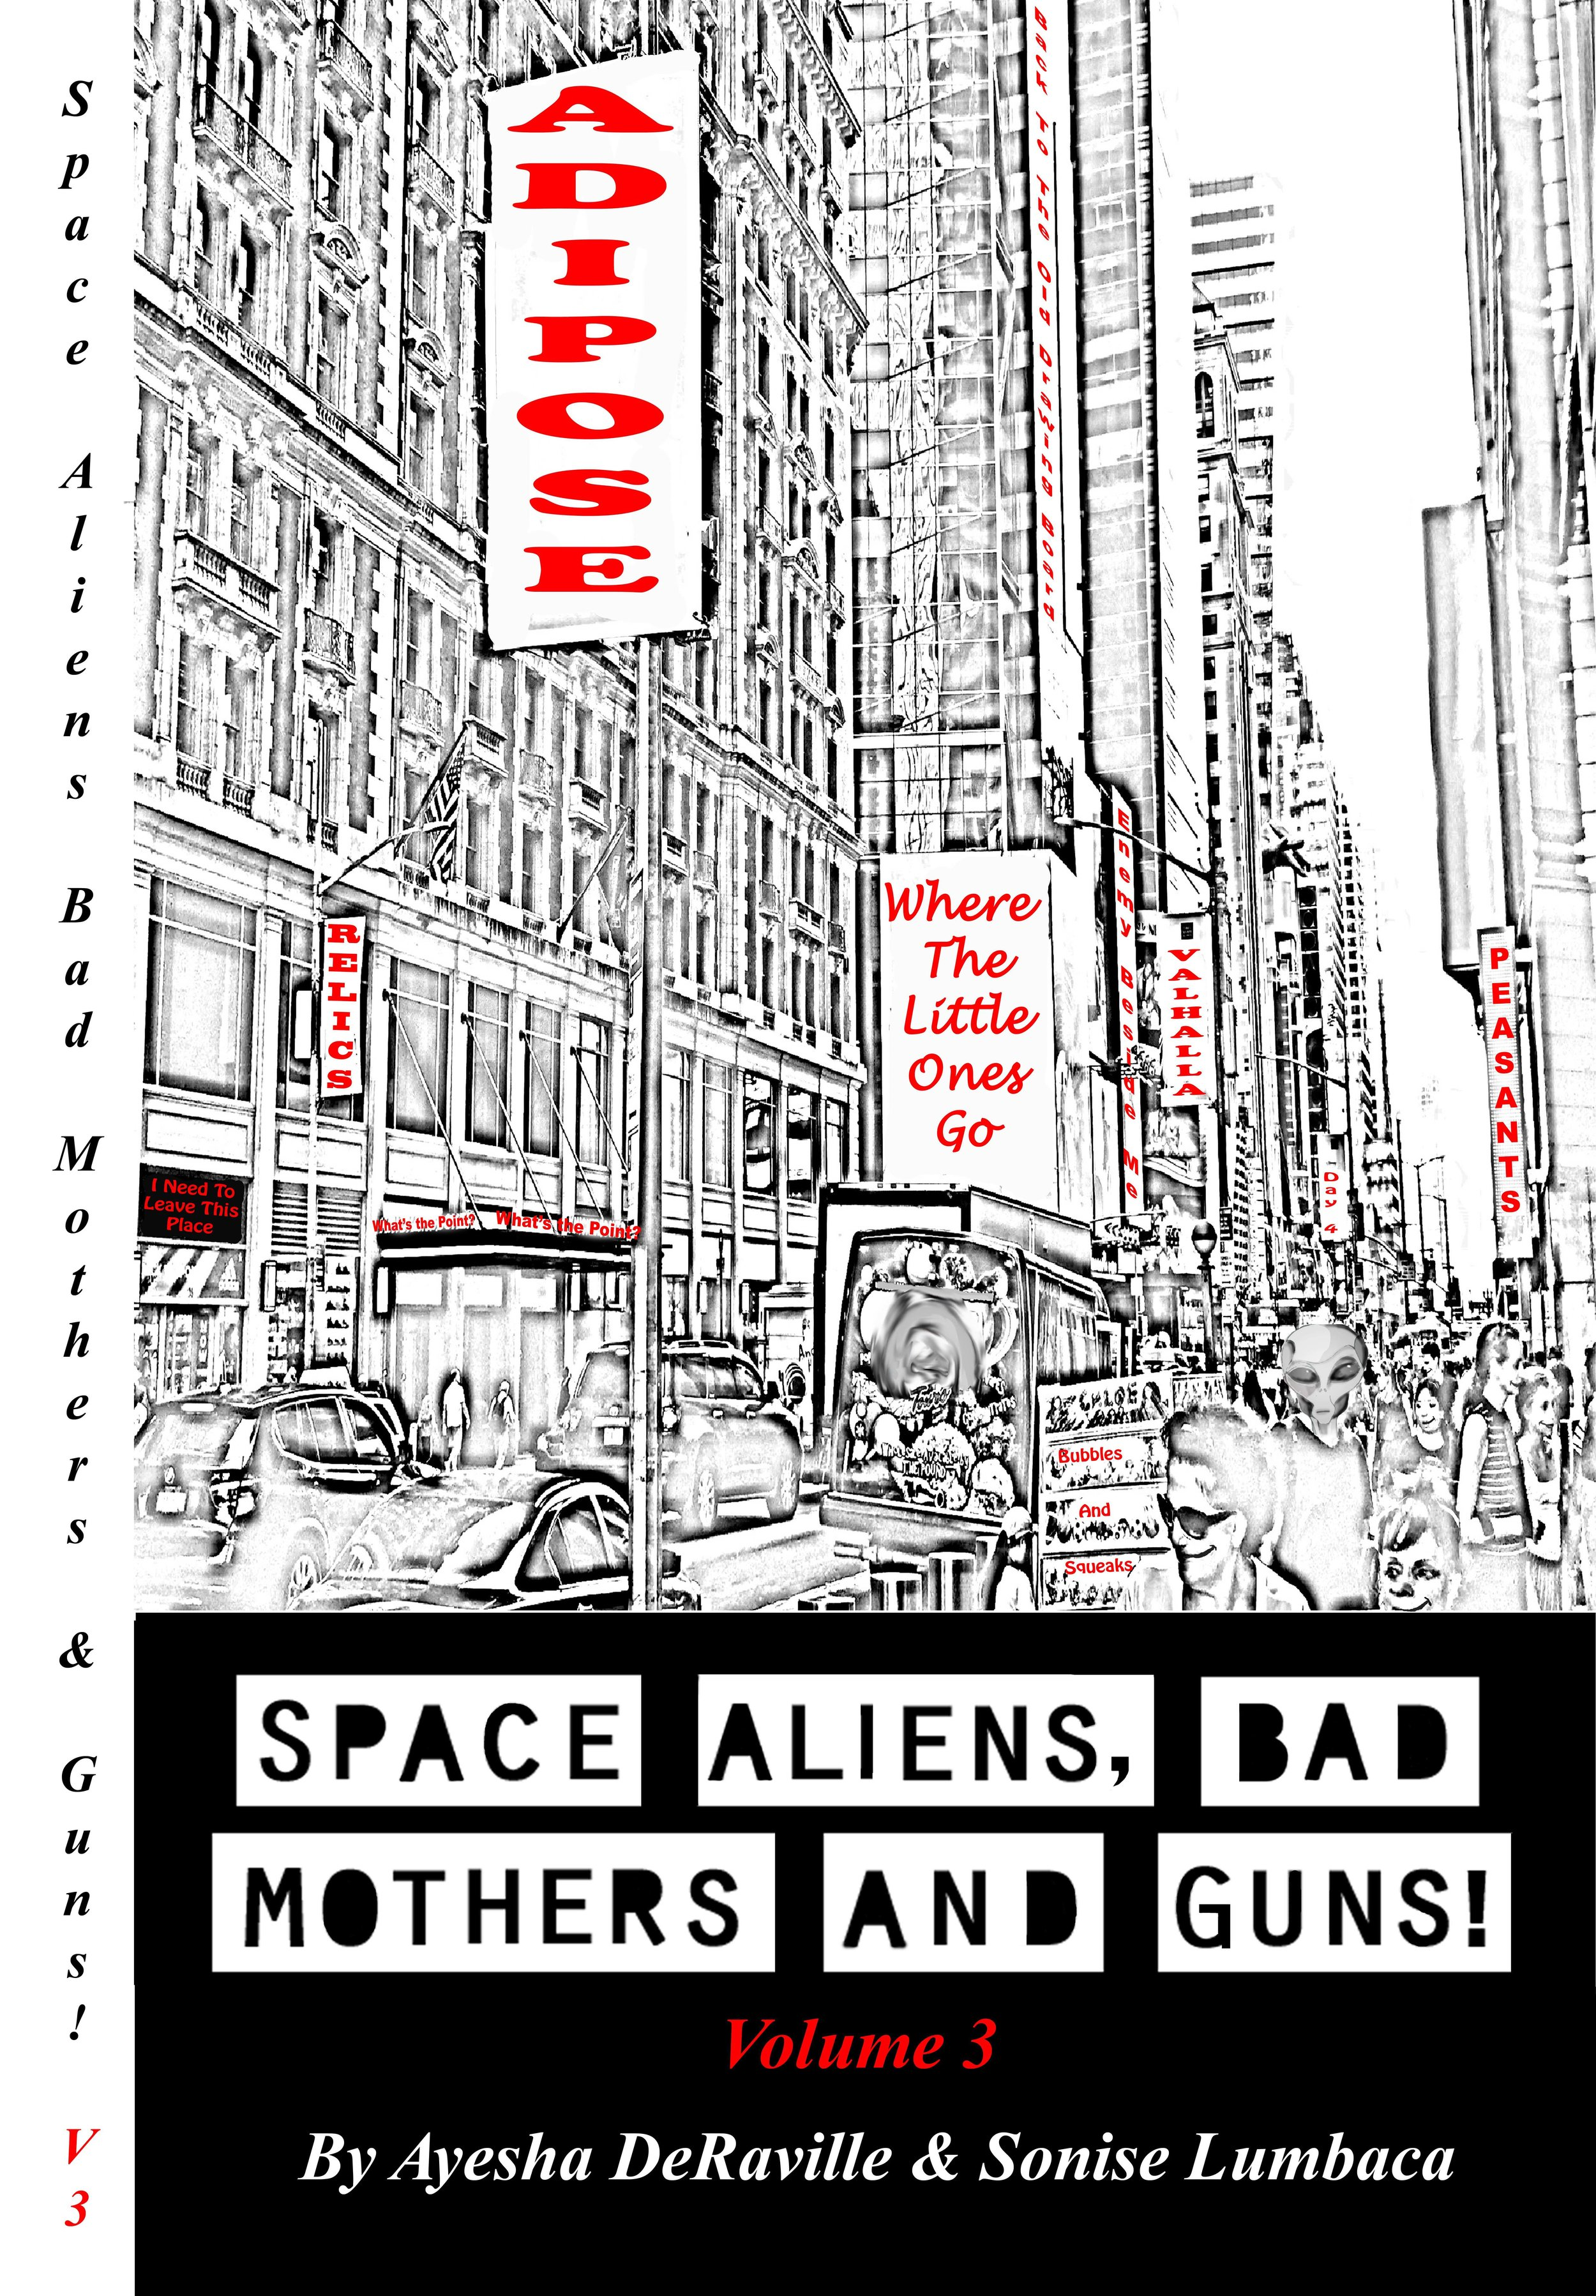 SABMG! VOLUME 3 - We are super excited about Space Aliens, Bad Mothers And Guns!: Volume 3! Sonise and I had even more fun with this volume especially because we decided to add more humor, fantasy and a surprise new genre, as well as poke a little fun at how we've seen people (on social media, we interact with and those we see out and about) adapt to our ever changing climate of life as it happens.We hope you enjoy the read as much as we've enjoyed writing it. Please check back for the